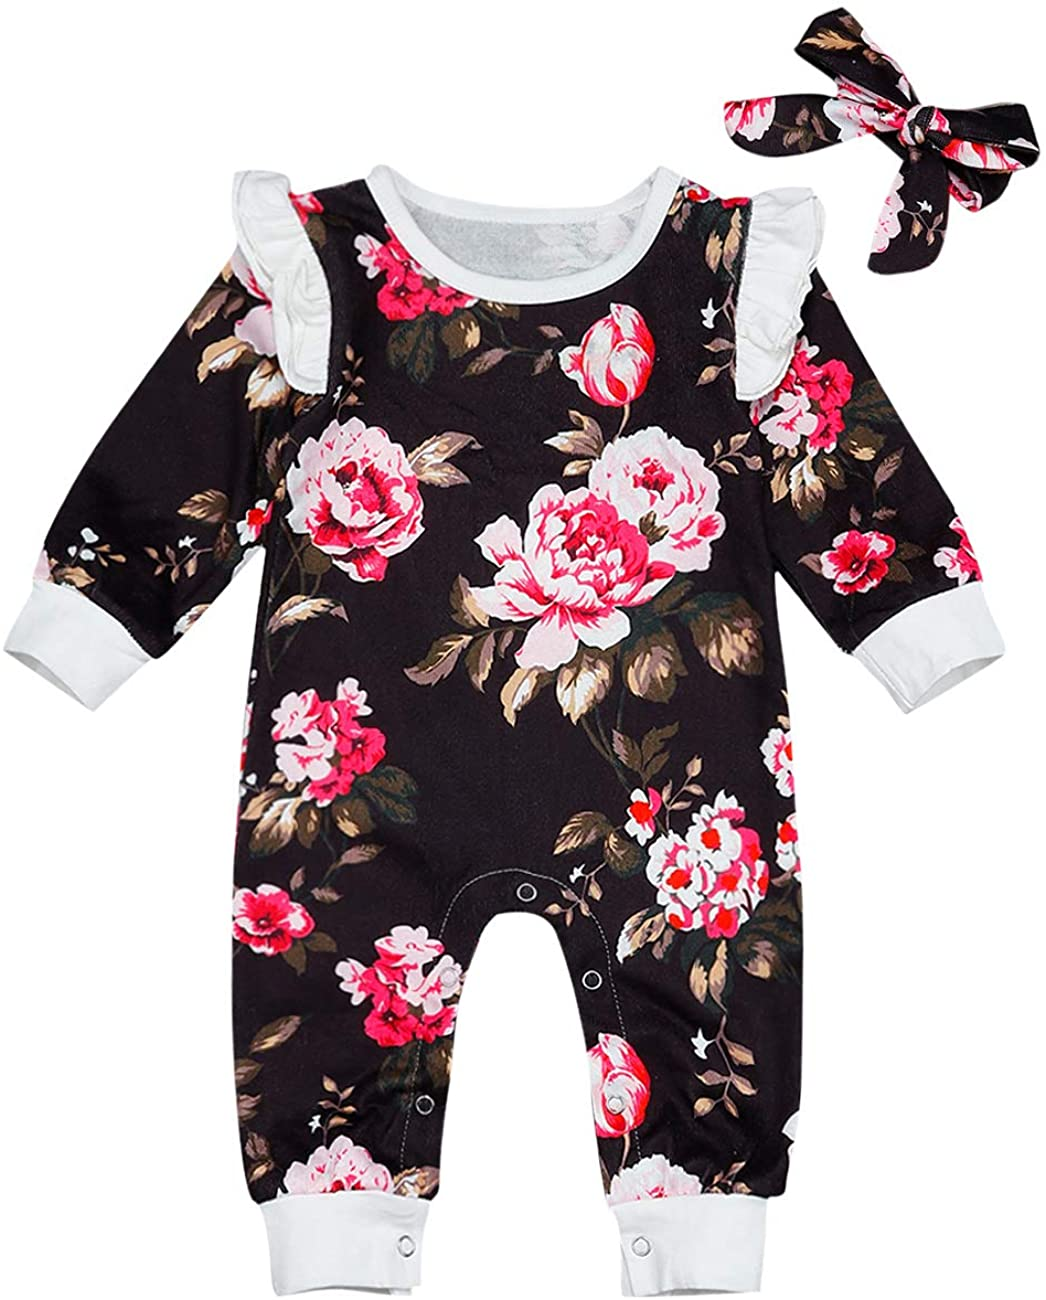 bilison Newborn Baby Girls Clothes Flavor Print Ruffled Long Sleeve Romper Jumpsuit Fall Outfits